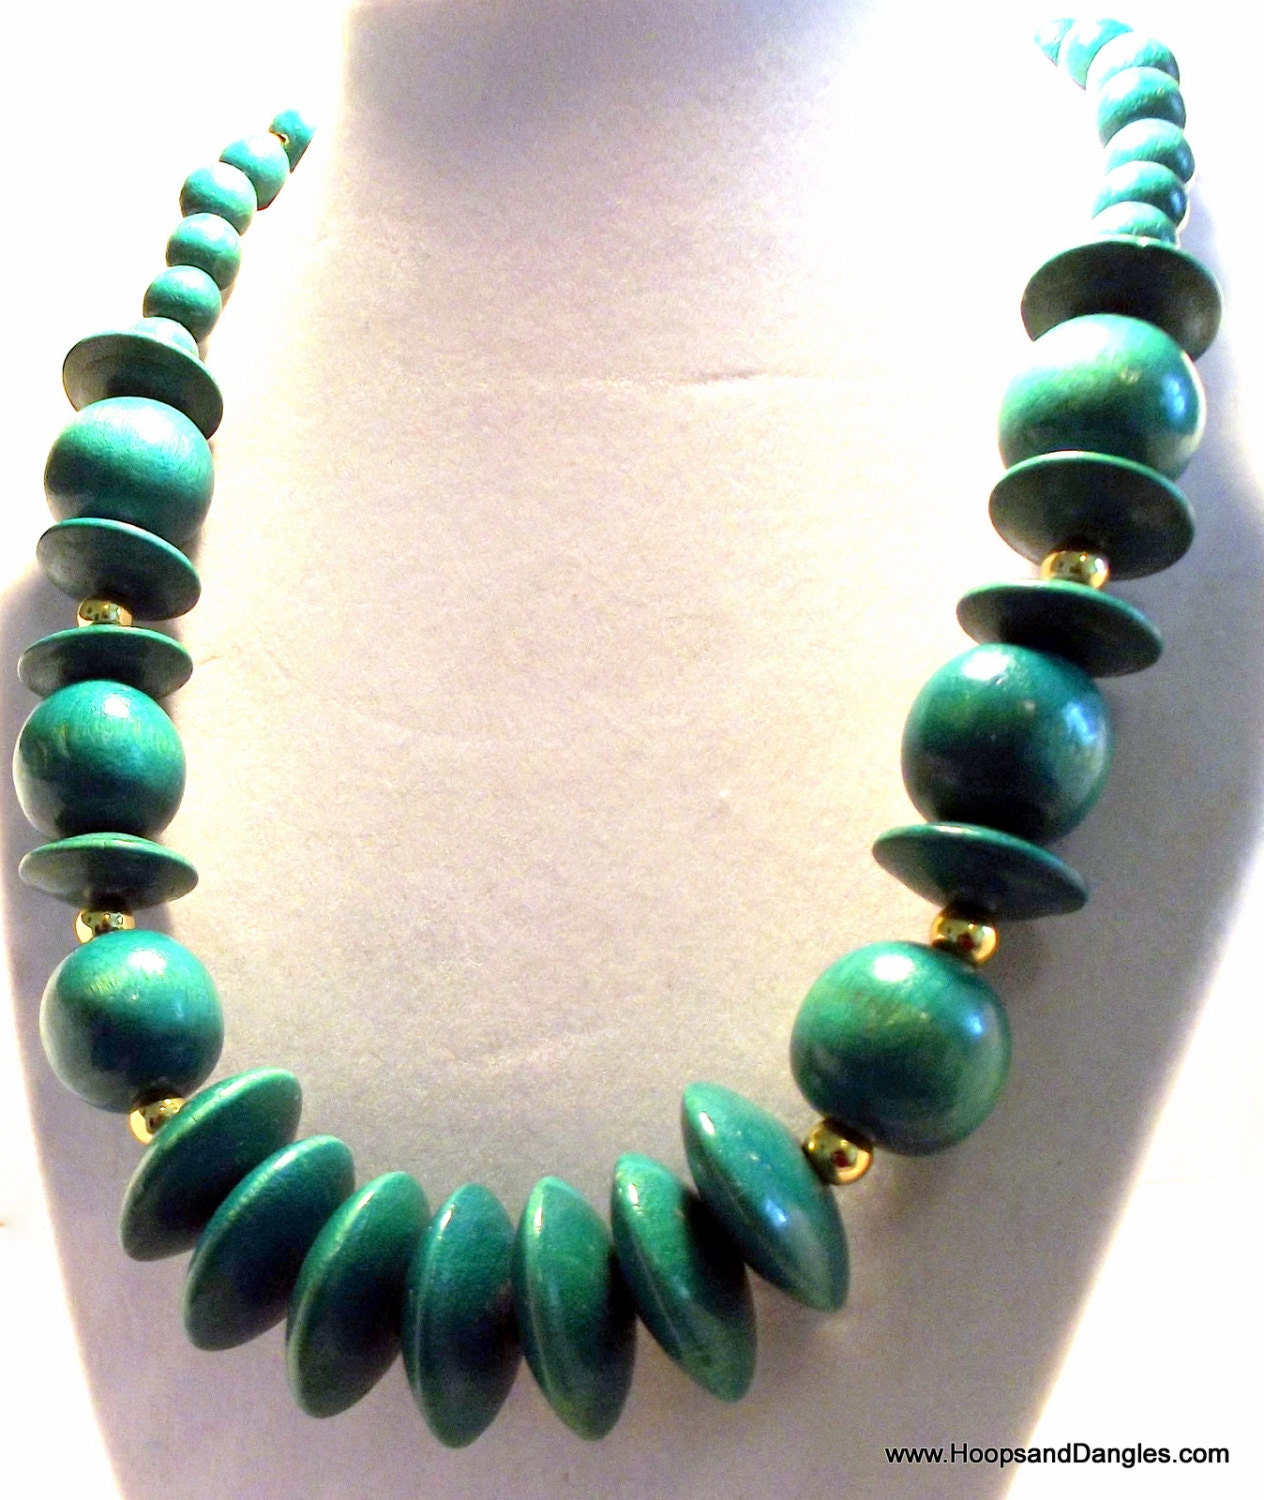 Green Costume Jewellery: Vintage Costume Jewelry Emerald Green Wood Bead By